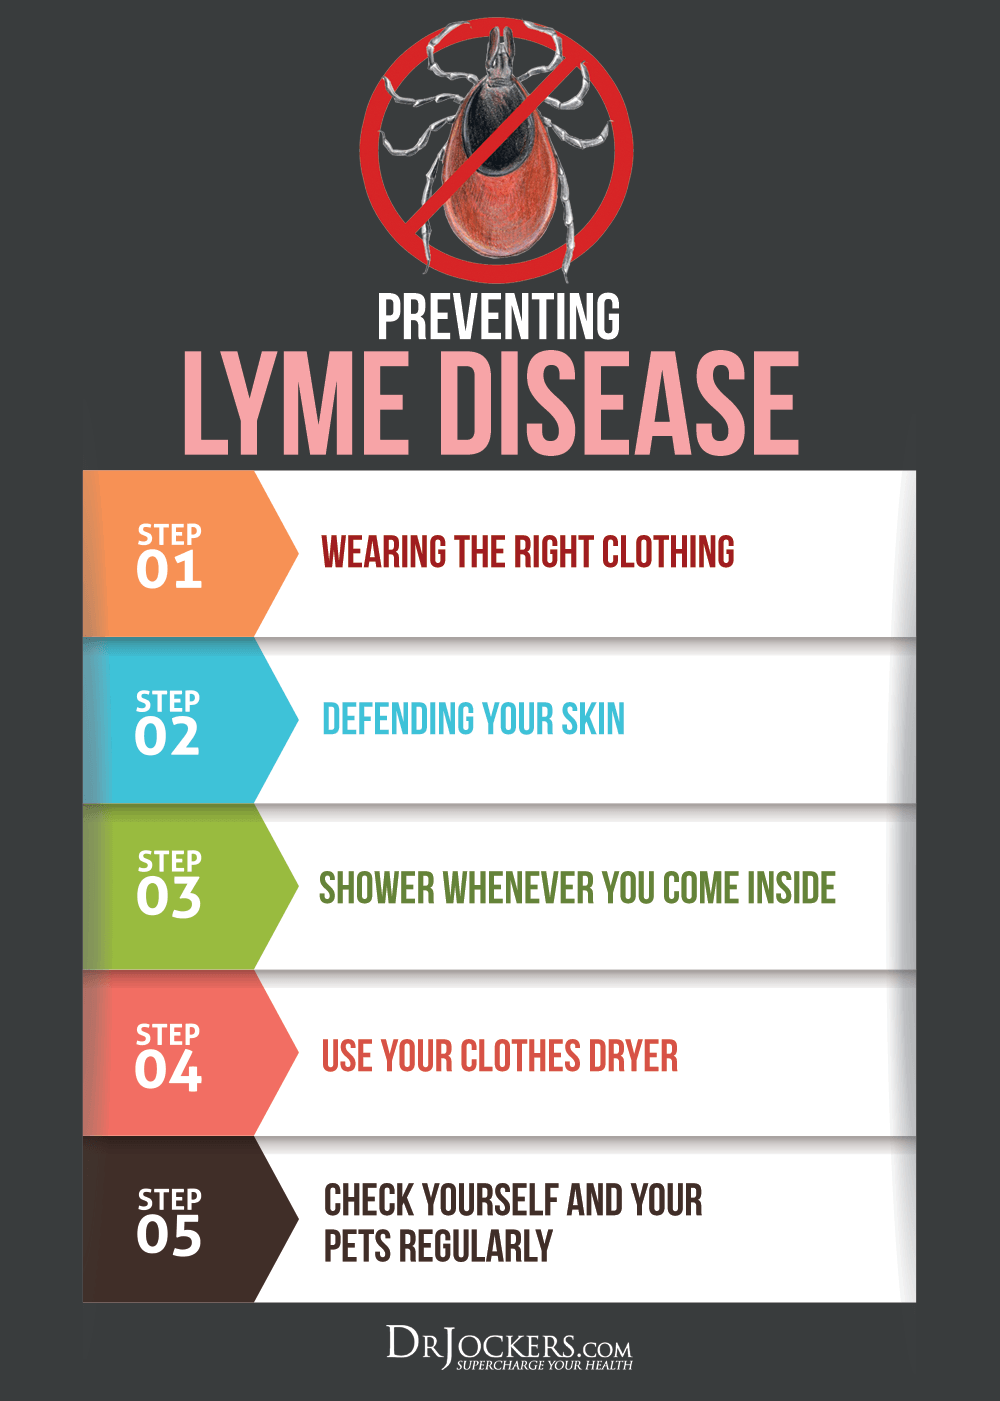 PREVENTINGLYMEDISEASE_Prevention